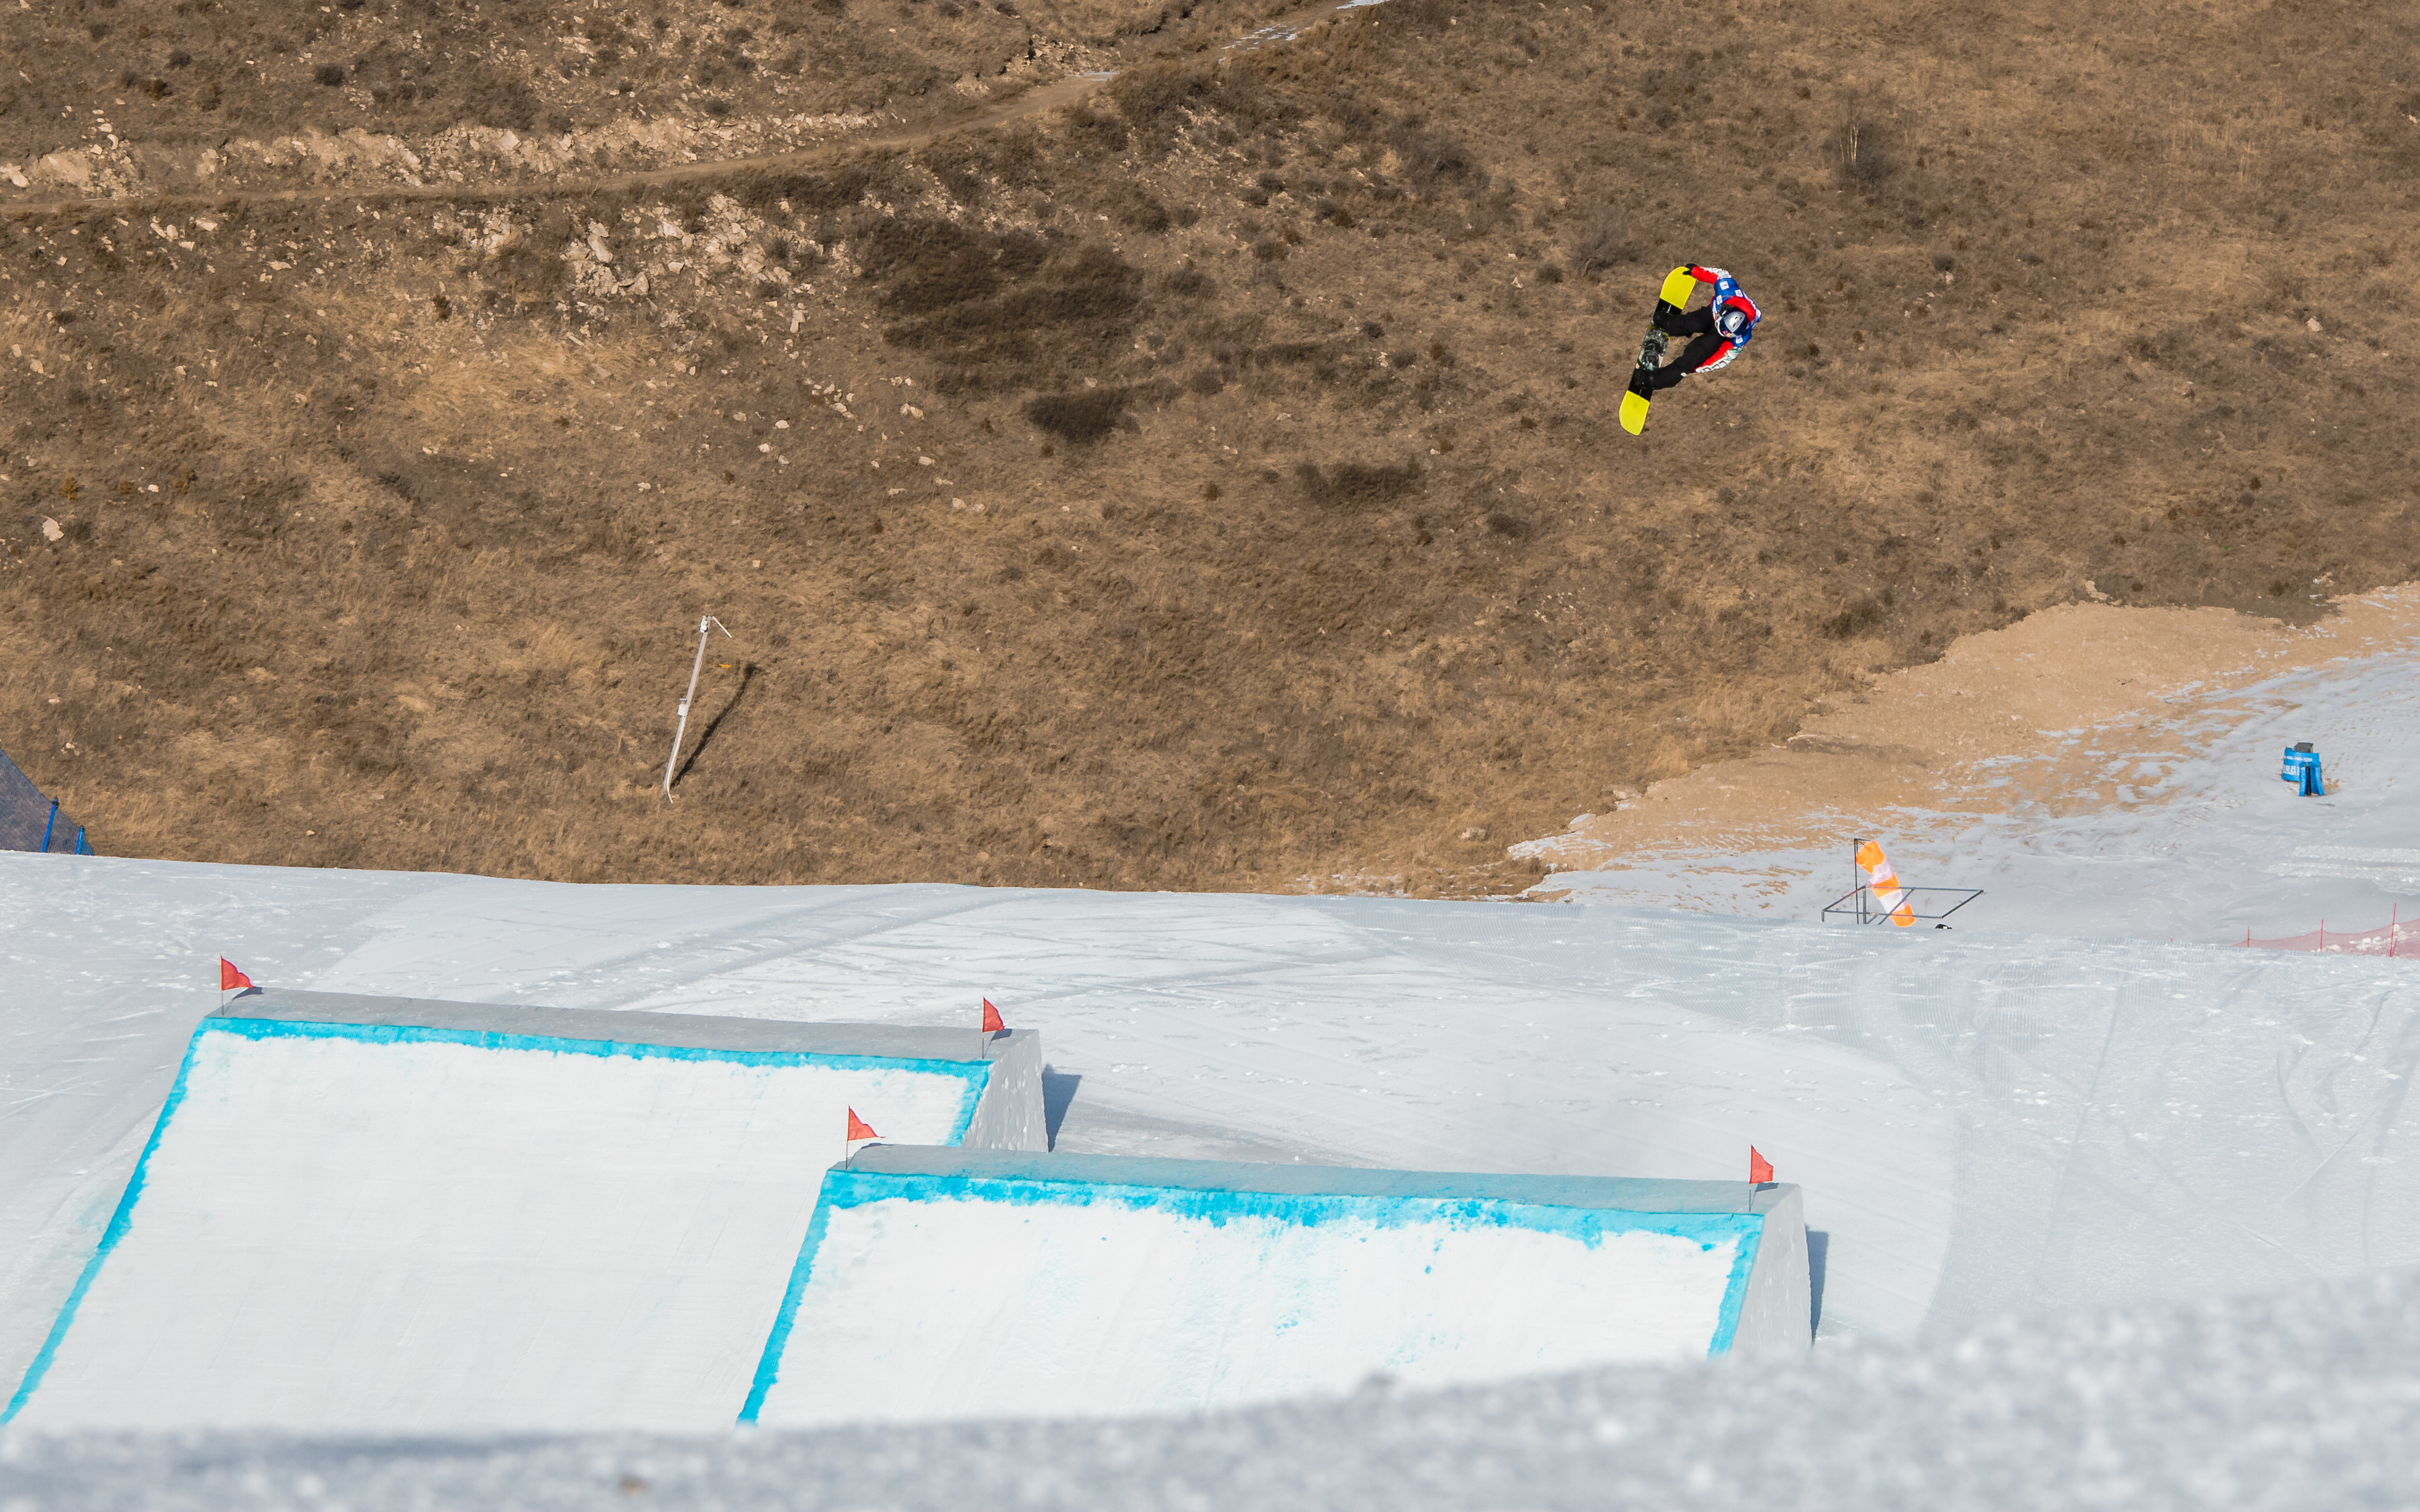 Takeru Otsuka front double 1440 tail at the FIS Secret Garden slopestyle World Cup event in China.